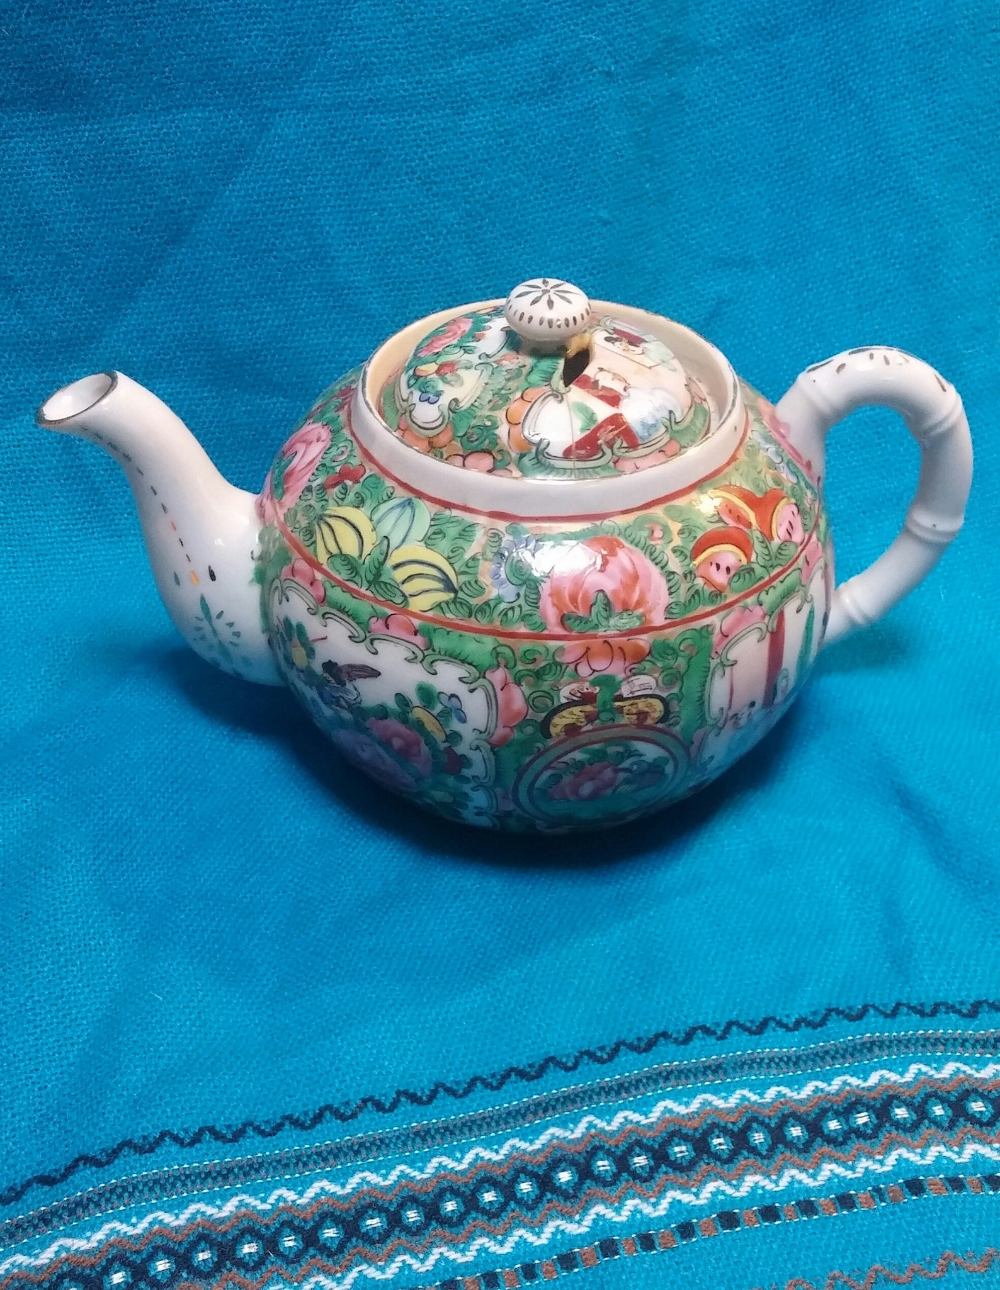 Small Vintage Teapot 12 oz Capacity Brown with Orange Gold and White Accents Floral Designs